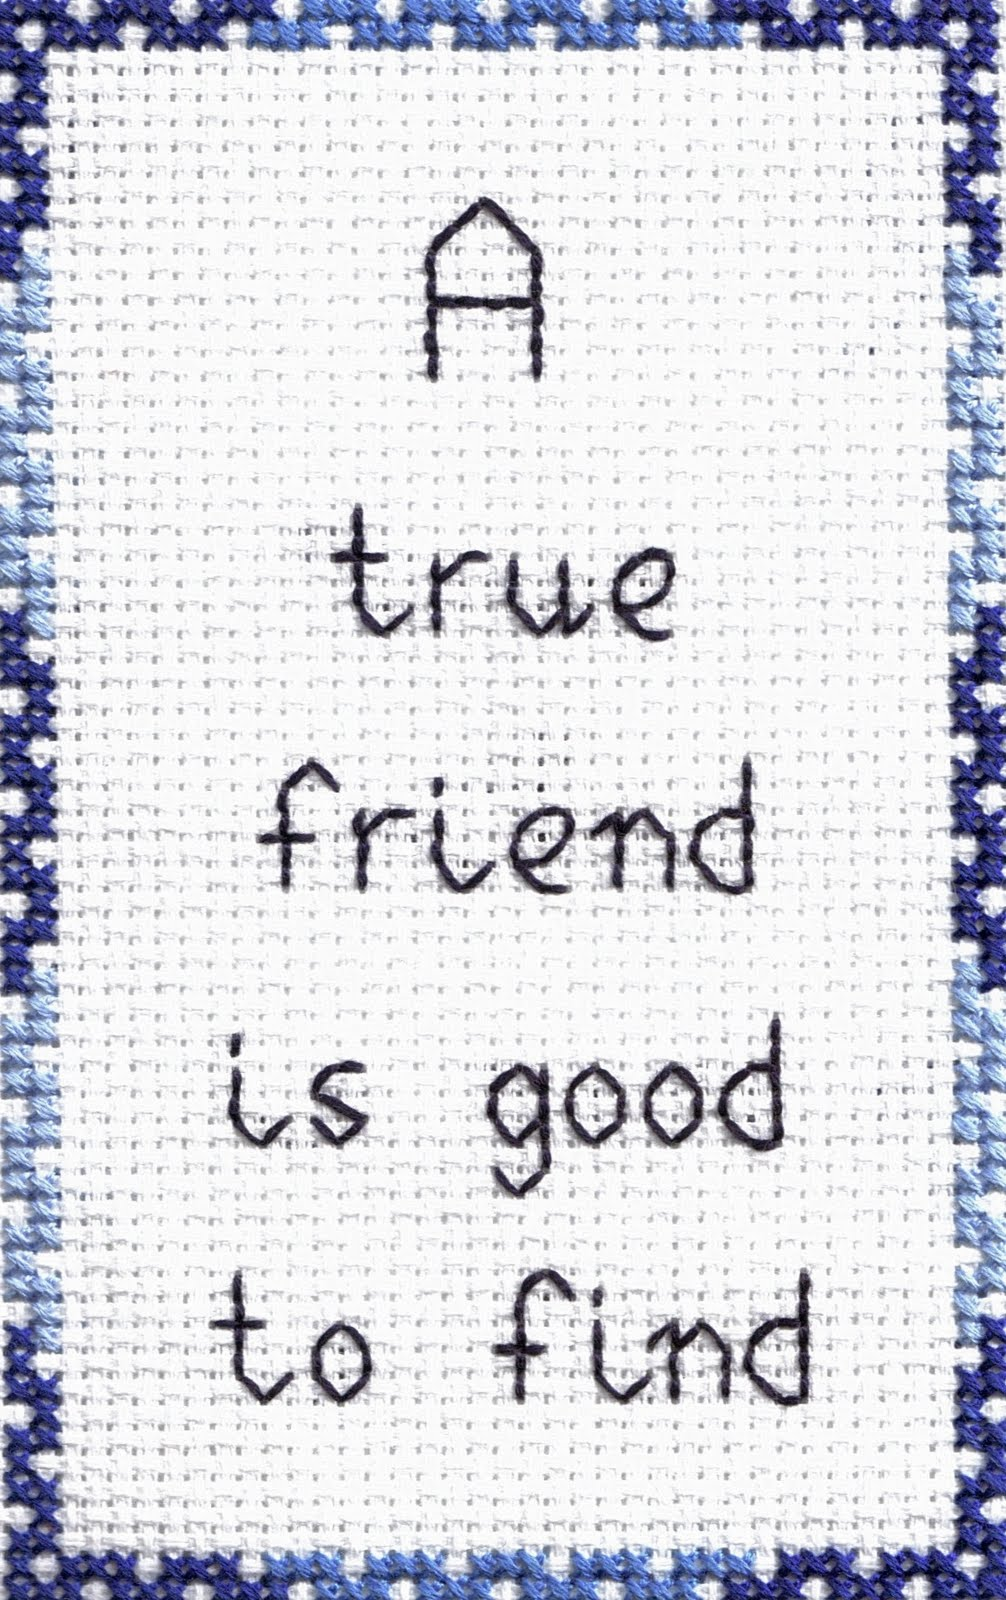 ... to expect but very difficult to give be a true friend yourself first